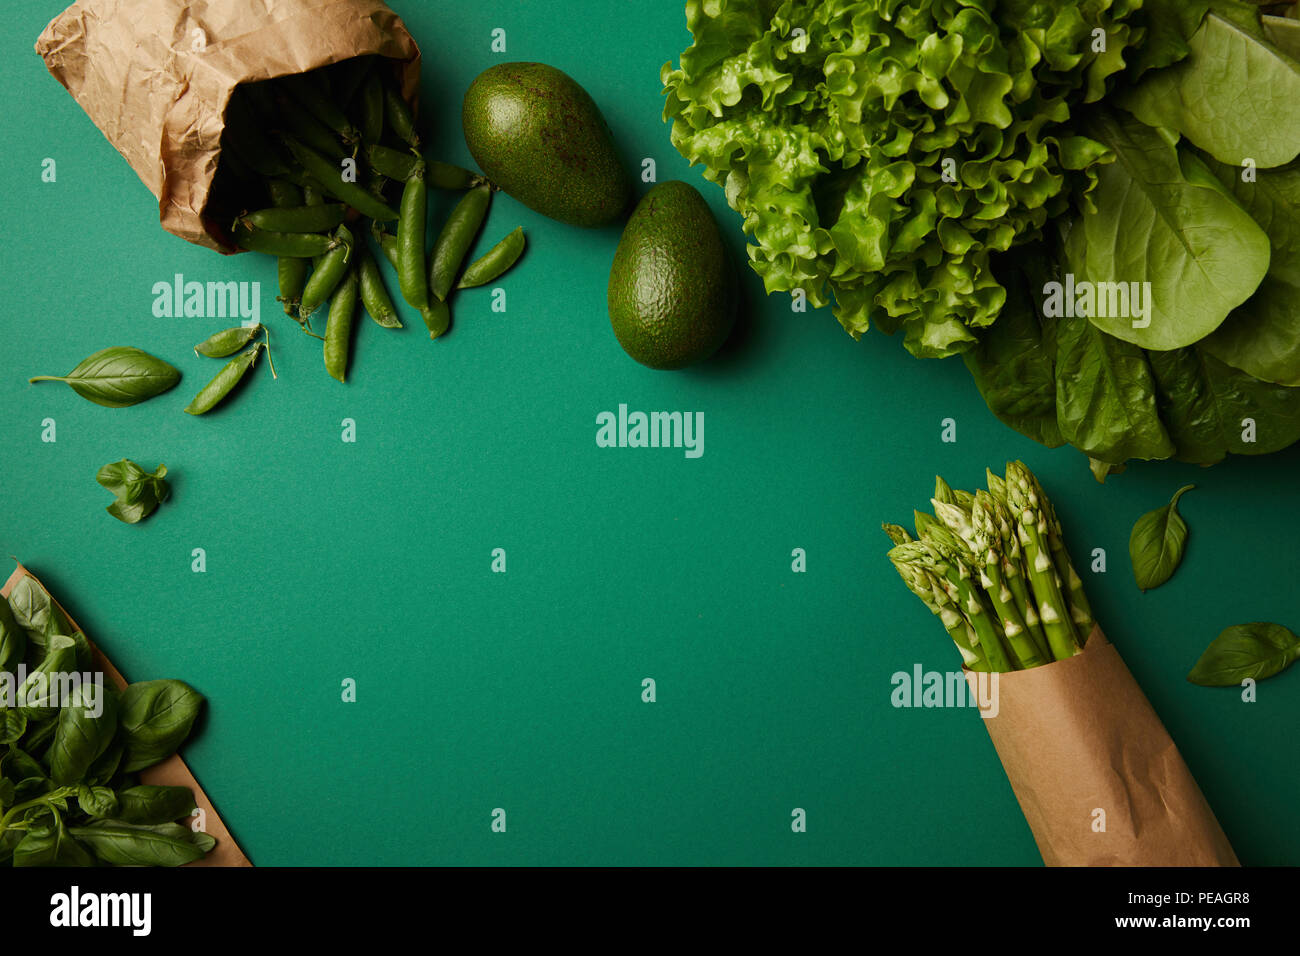 top view of different green ripe vegetables on green surface - Stock Image